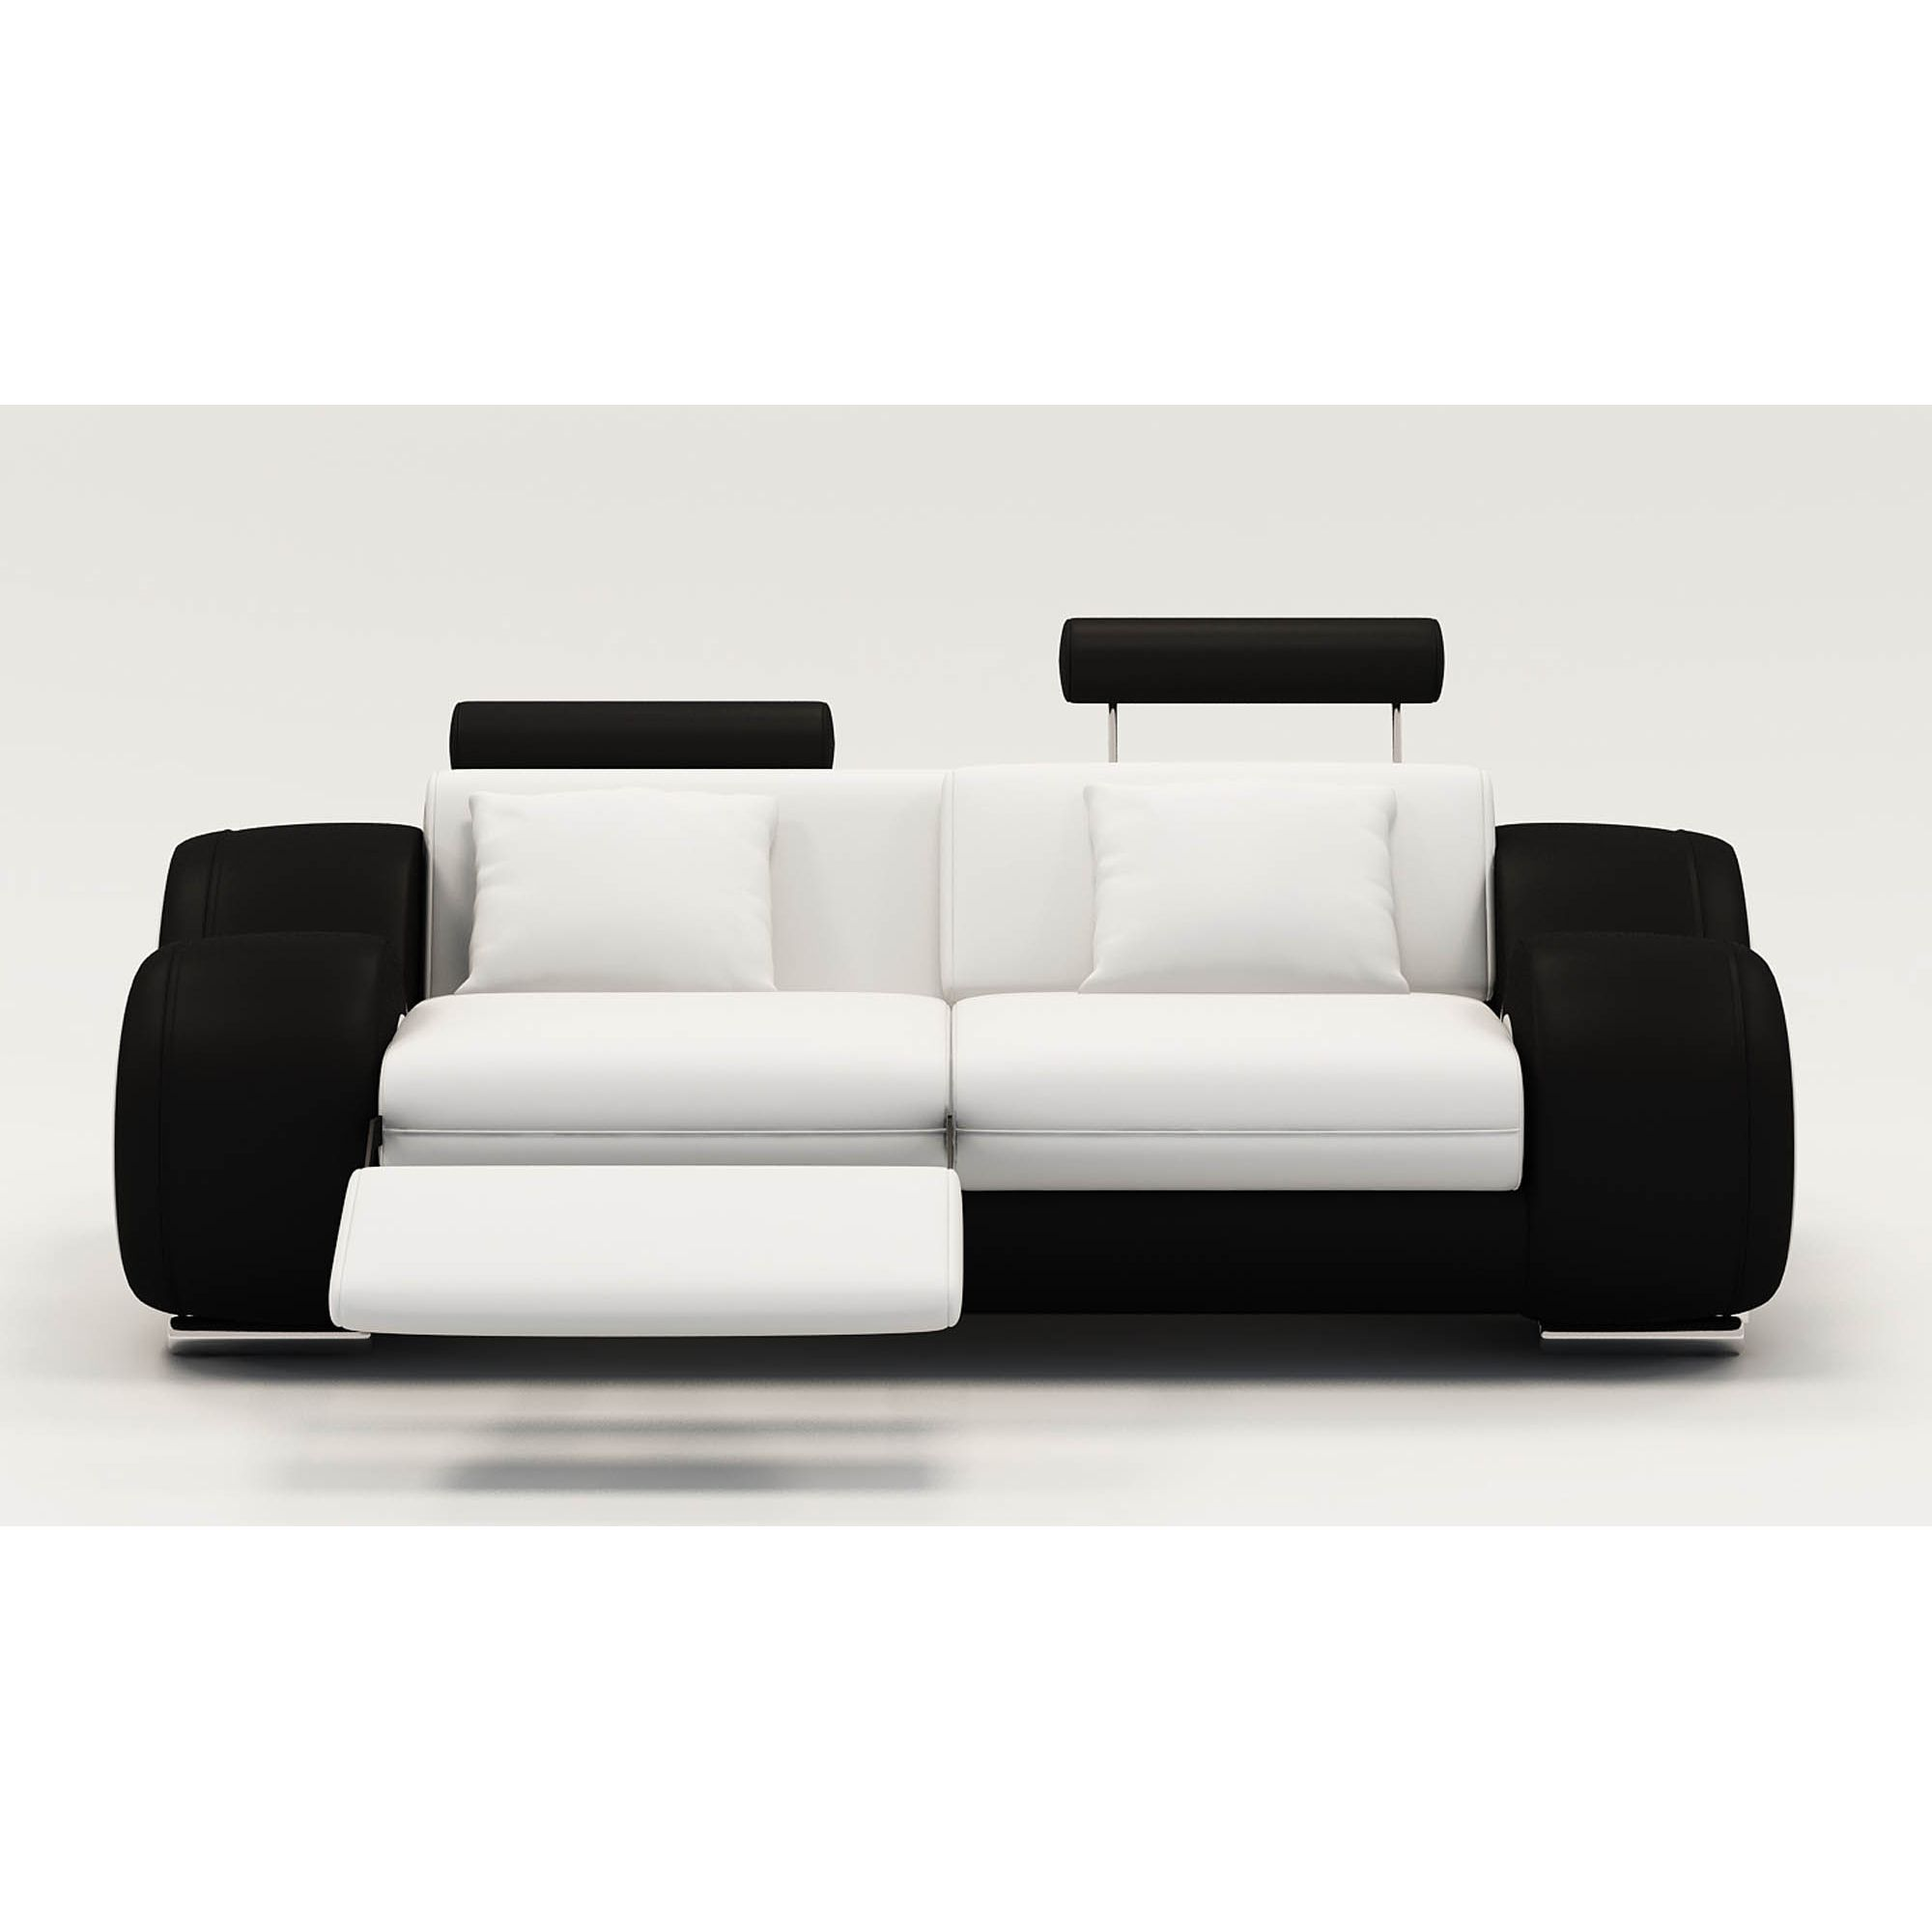 deco in paris canape 2 places design relax oslo en cuir blanc et noir 2pl b. Black Bedroom Furniture Sets. Home Design Ideas